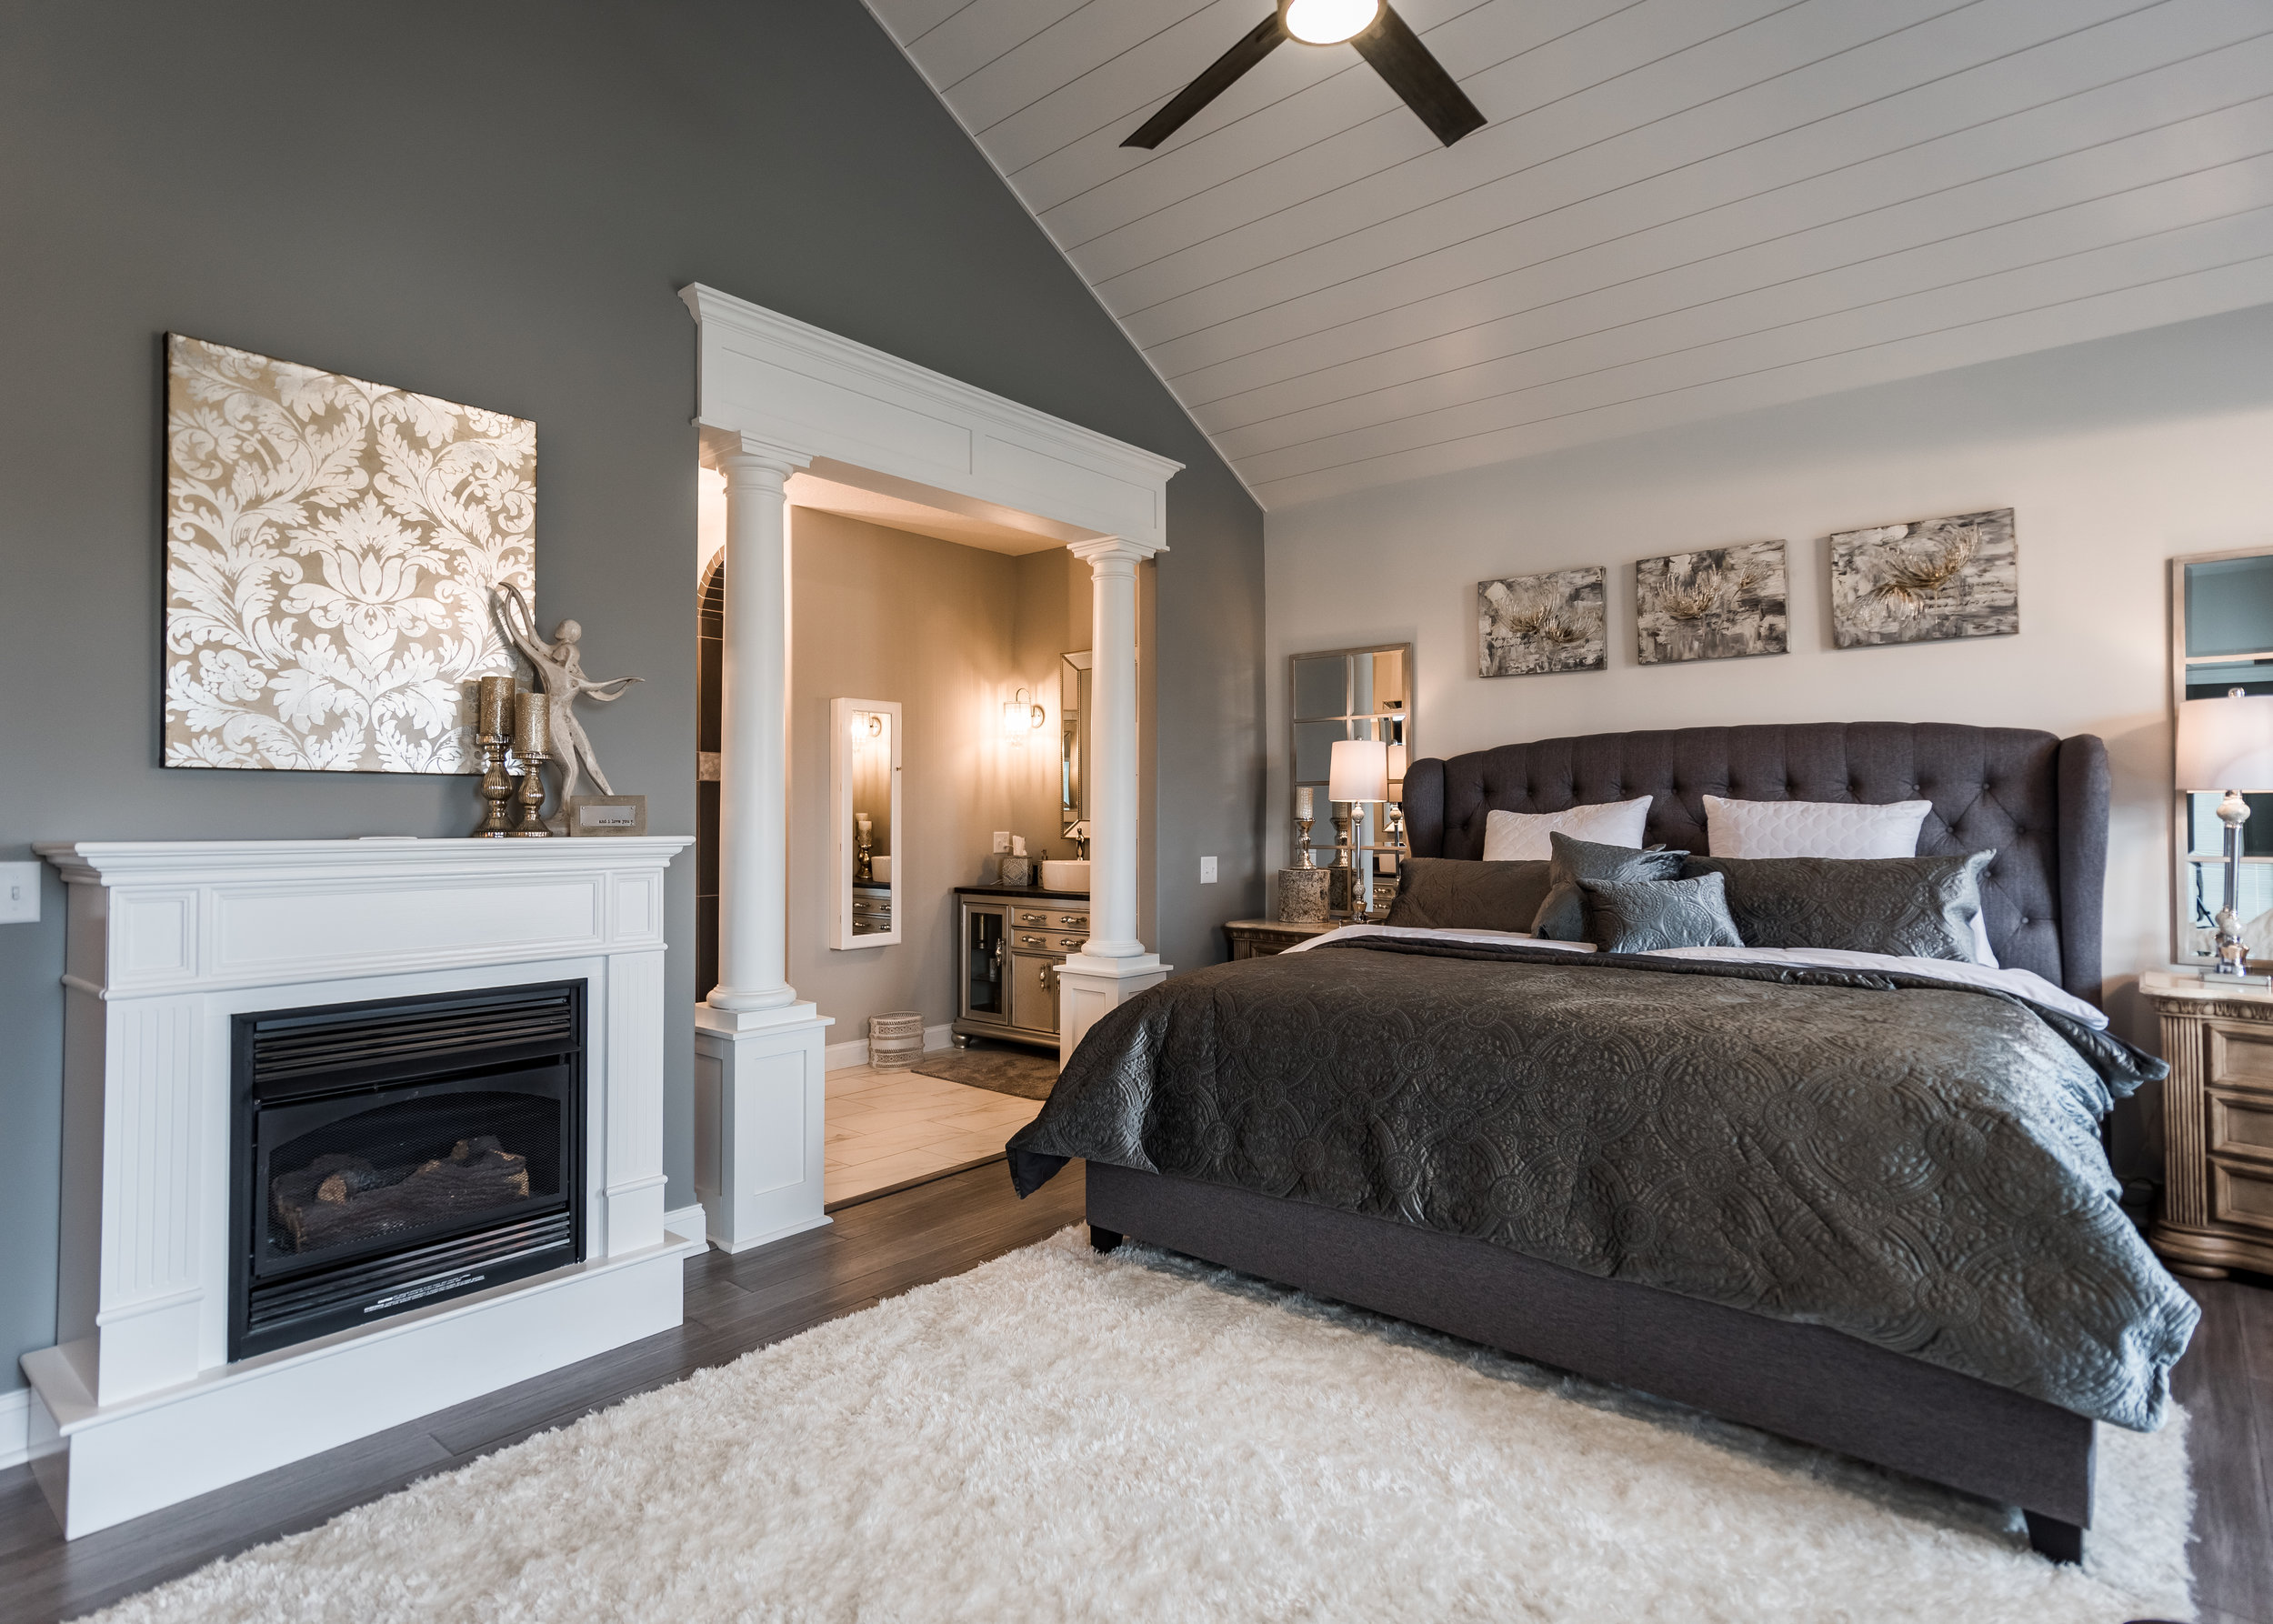 PH_design_and_construction_aberlour_bedroom